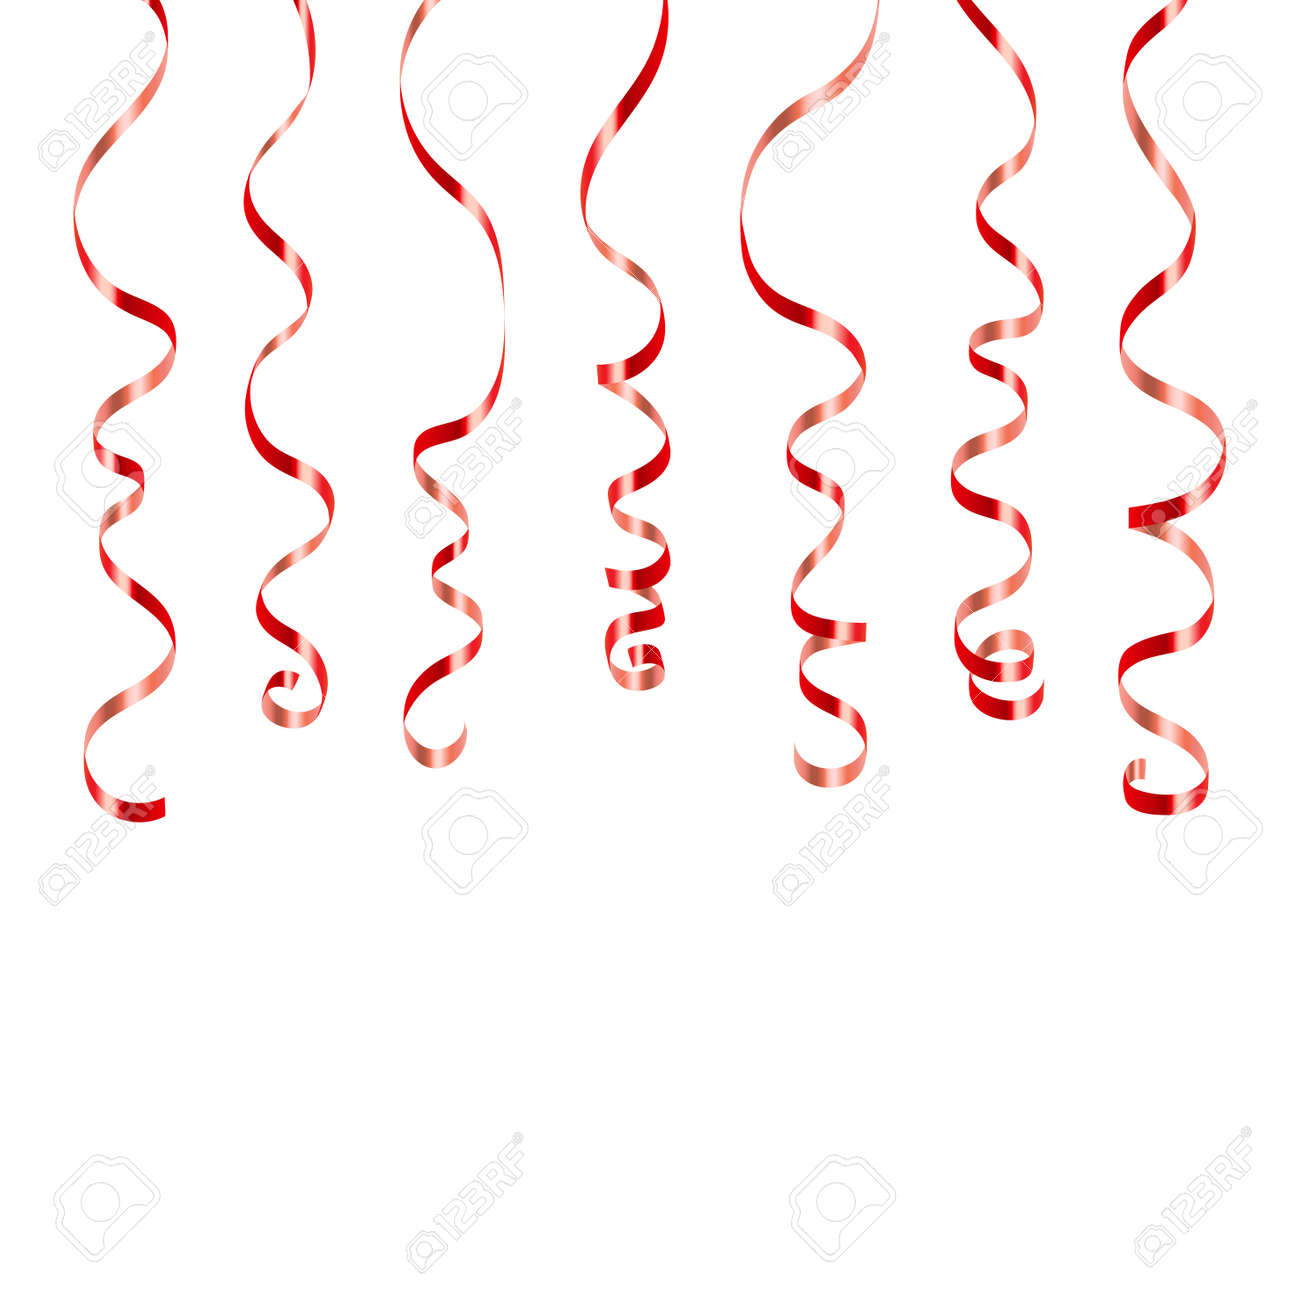 new year celebration anniversary carnival vector illustration red curly ribbons serpentine on white background colorful streamers